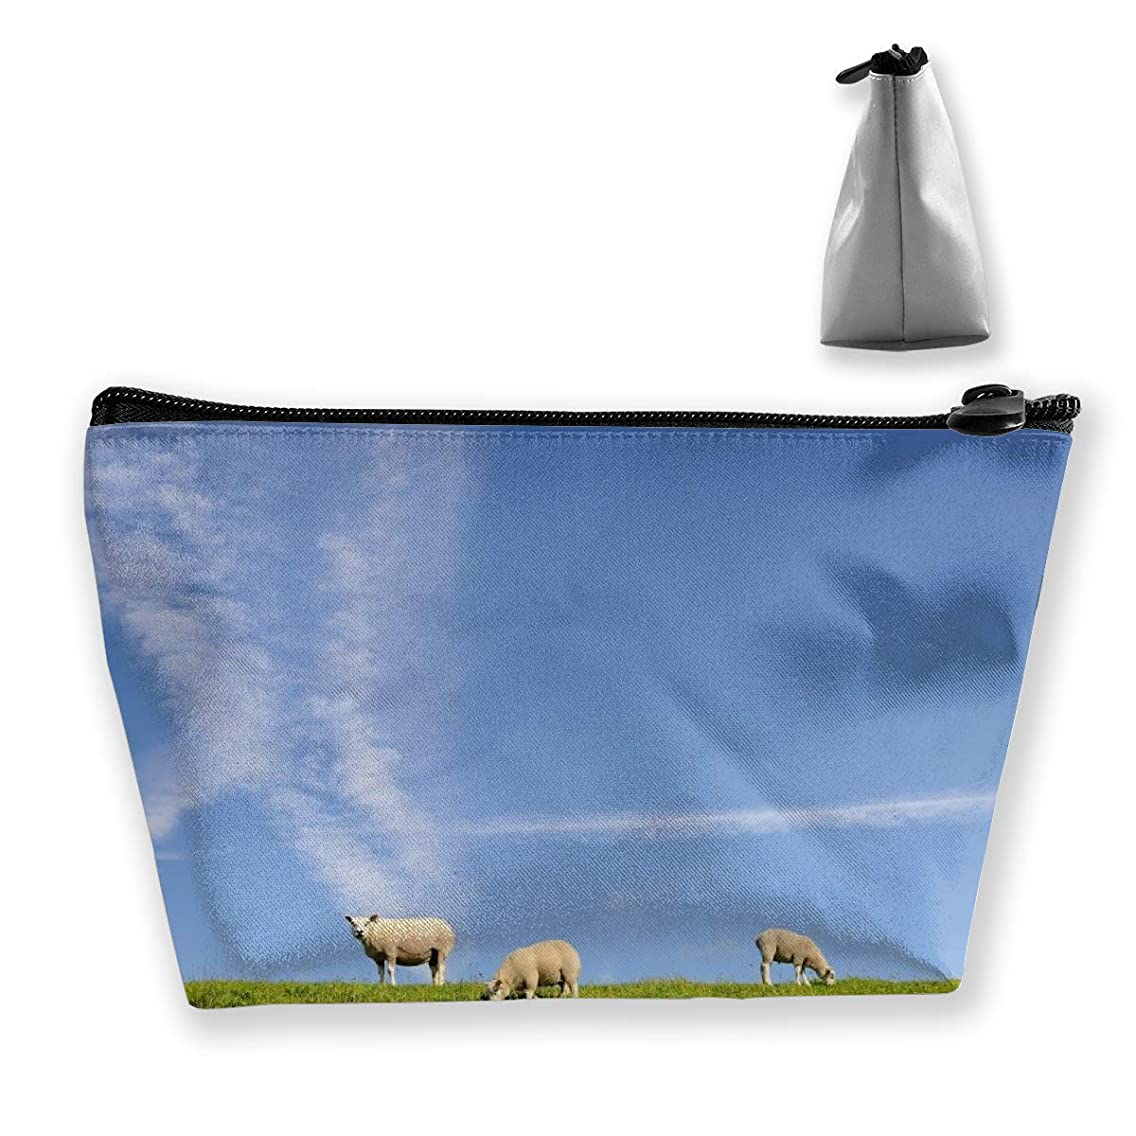 Trapezoidal Cosmetic Bags Makeup Toiletry Pouch Sheep On Glassland Travel Storage Bag Phone Purse